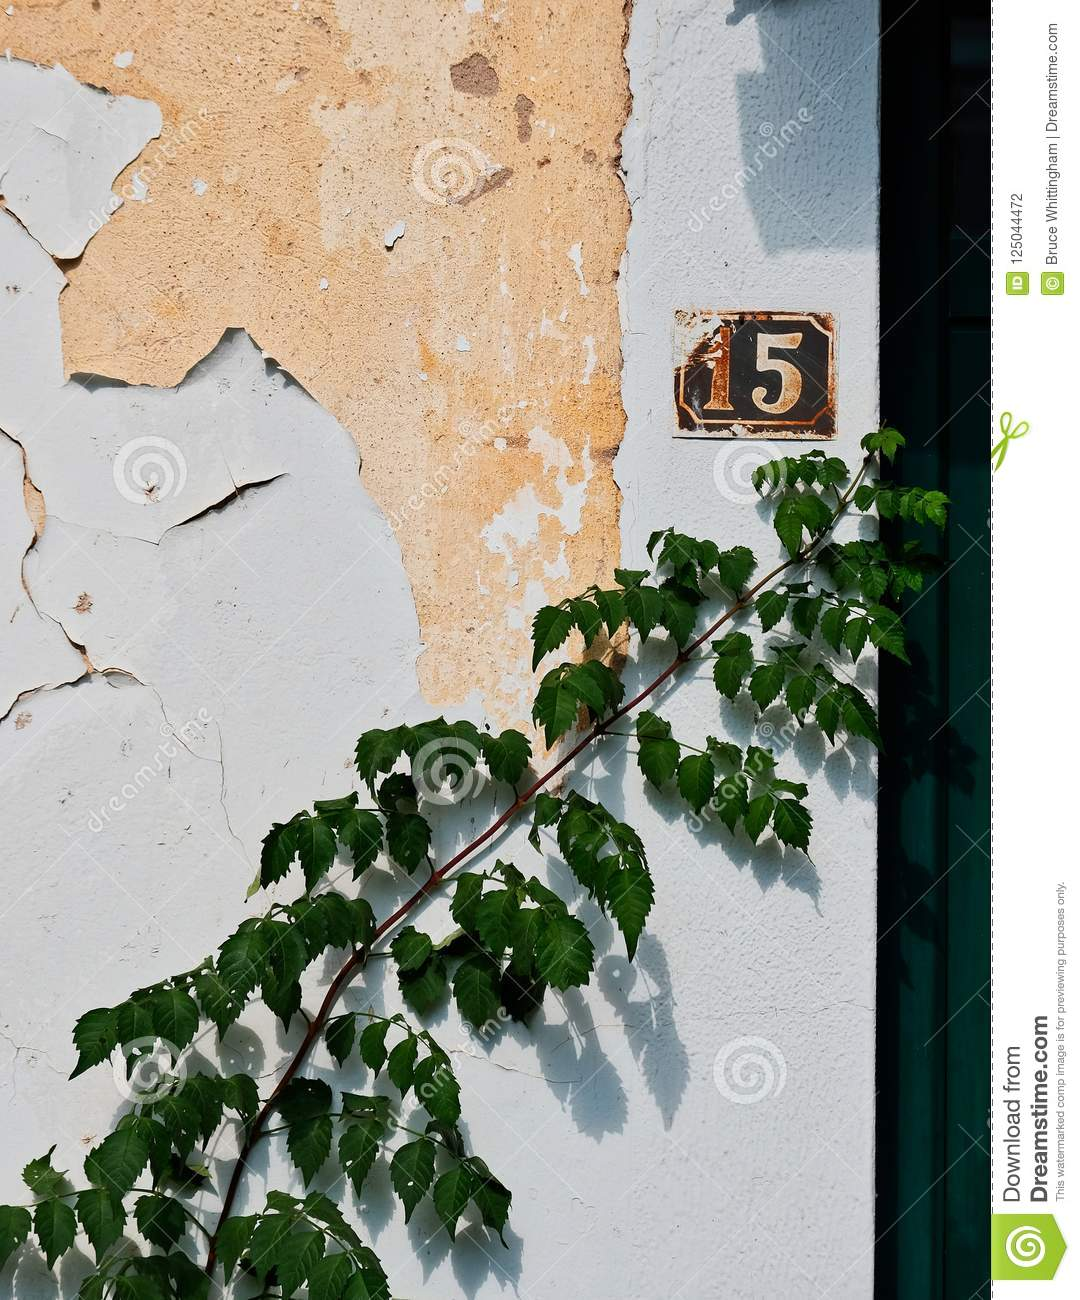 Green Ivy Plant Growing on Peeling White Stucco Wall, Greece